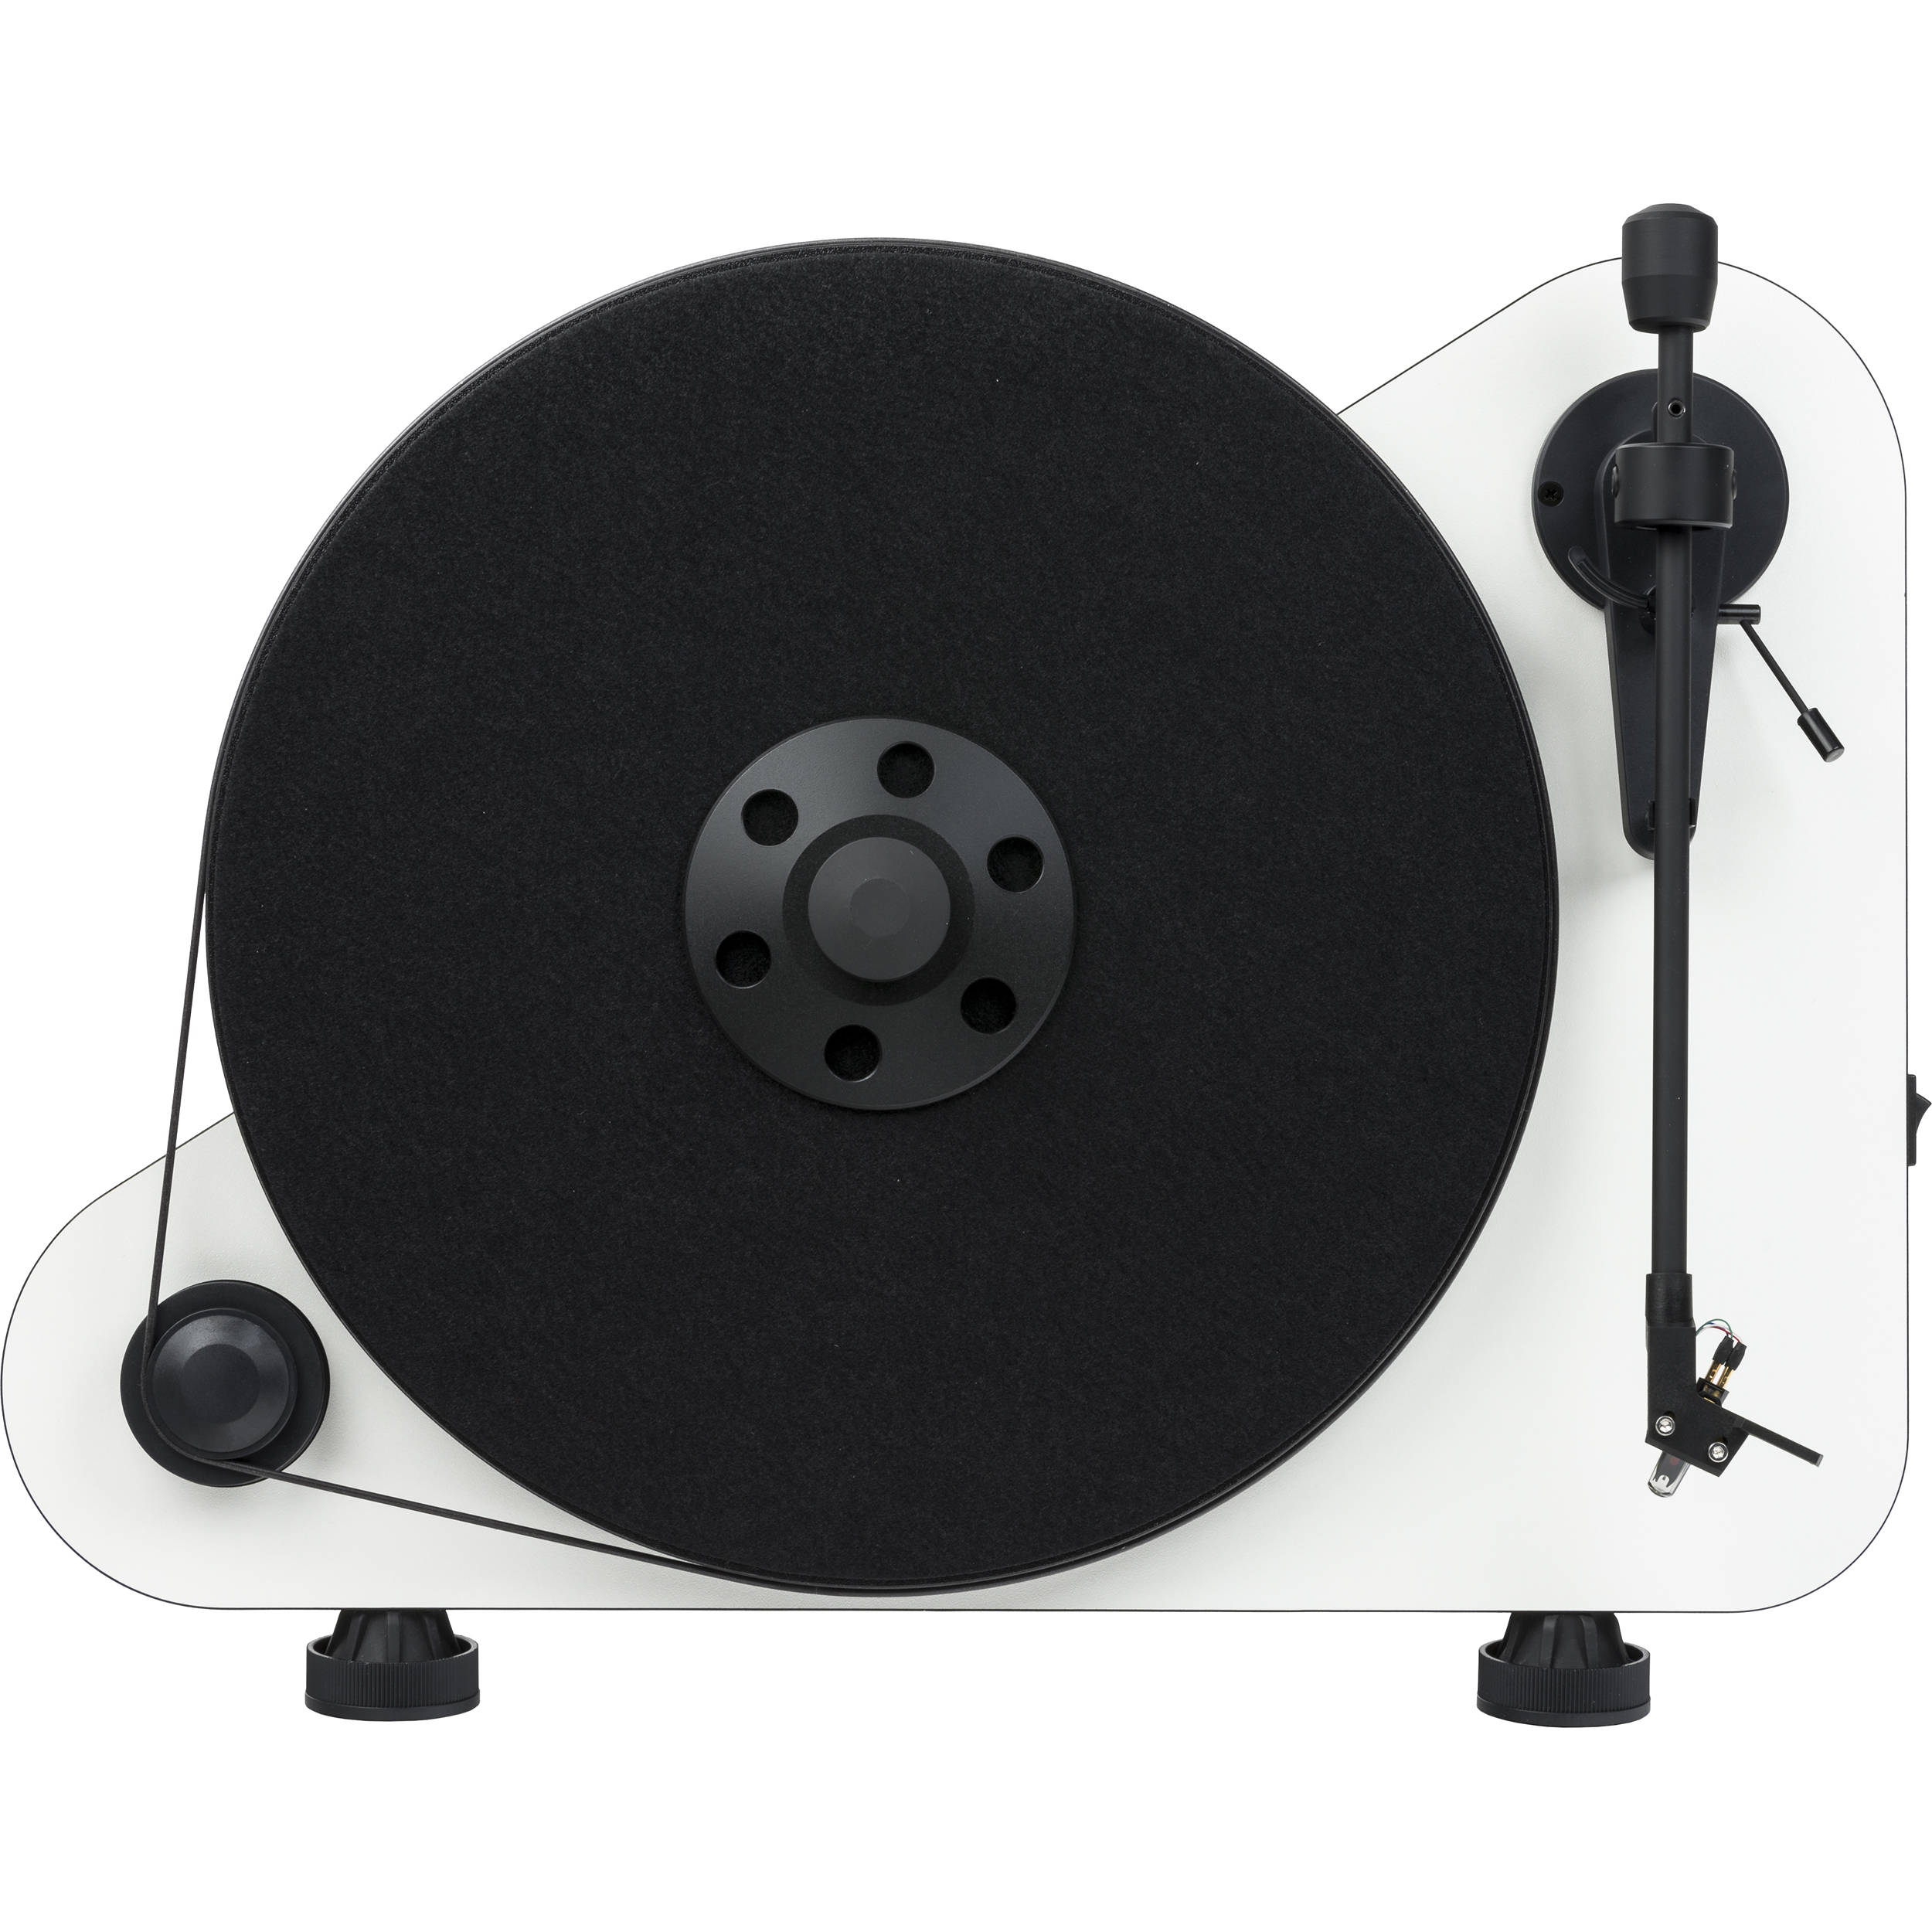 Pro Ject Audio Systems VT E BT R Vertical Turntable with Bluetooth (High Gloss White)